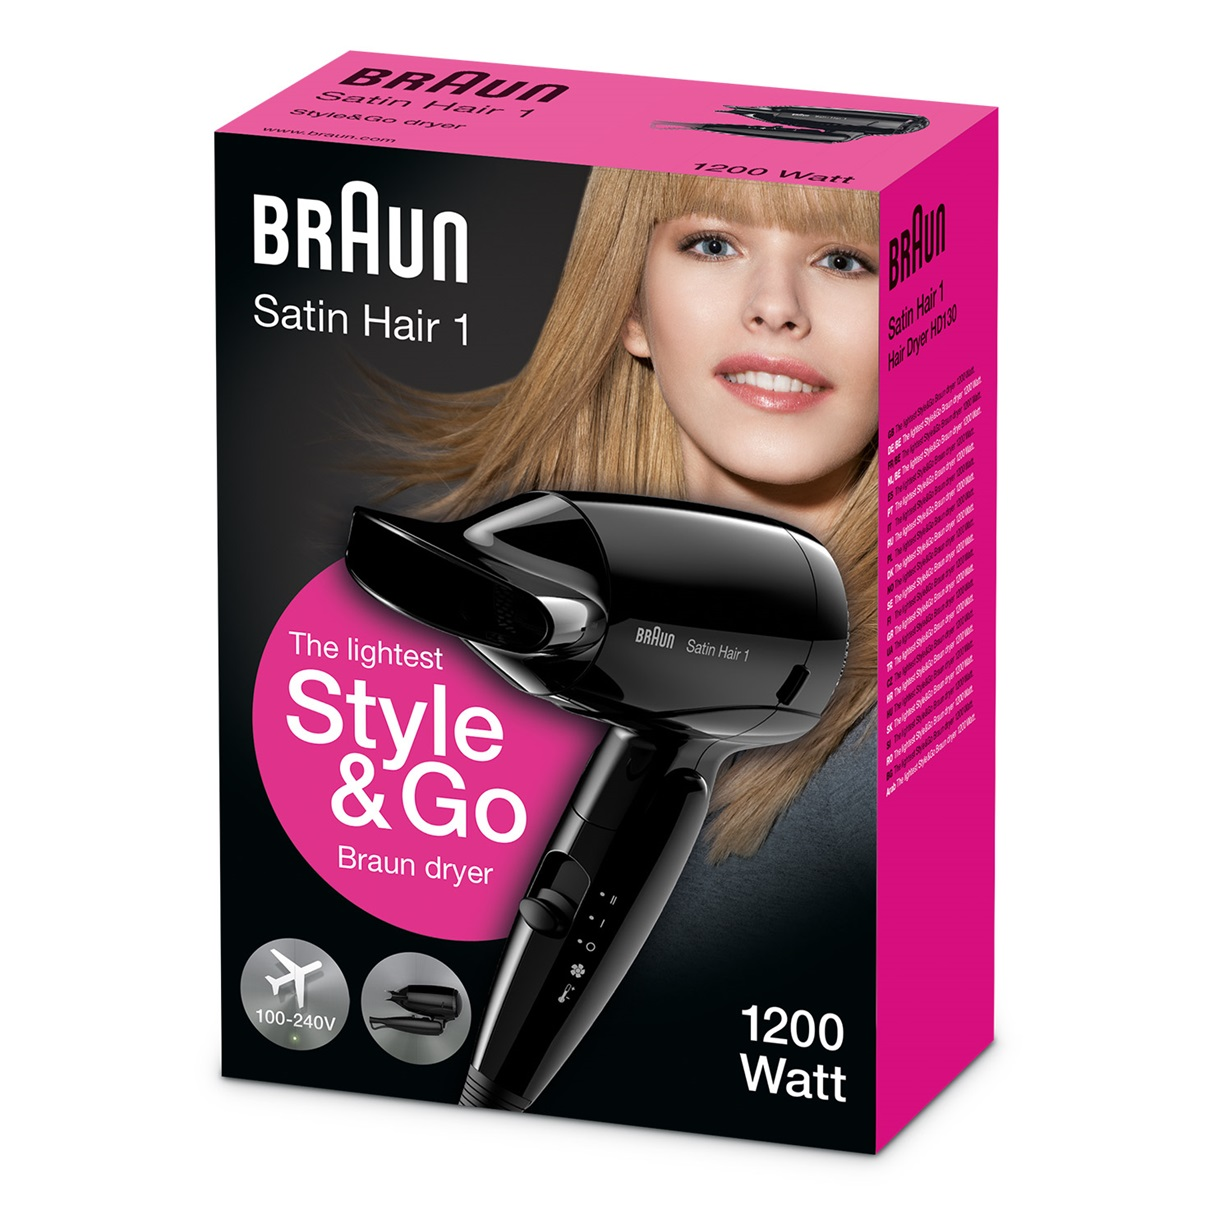 Braun Satin Hair 1 HD130 the lightest Style&Go Braun dryer - packaging